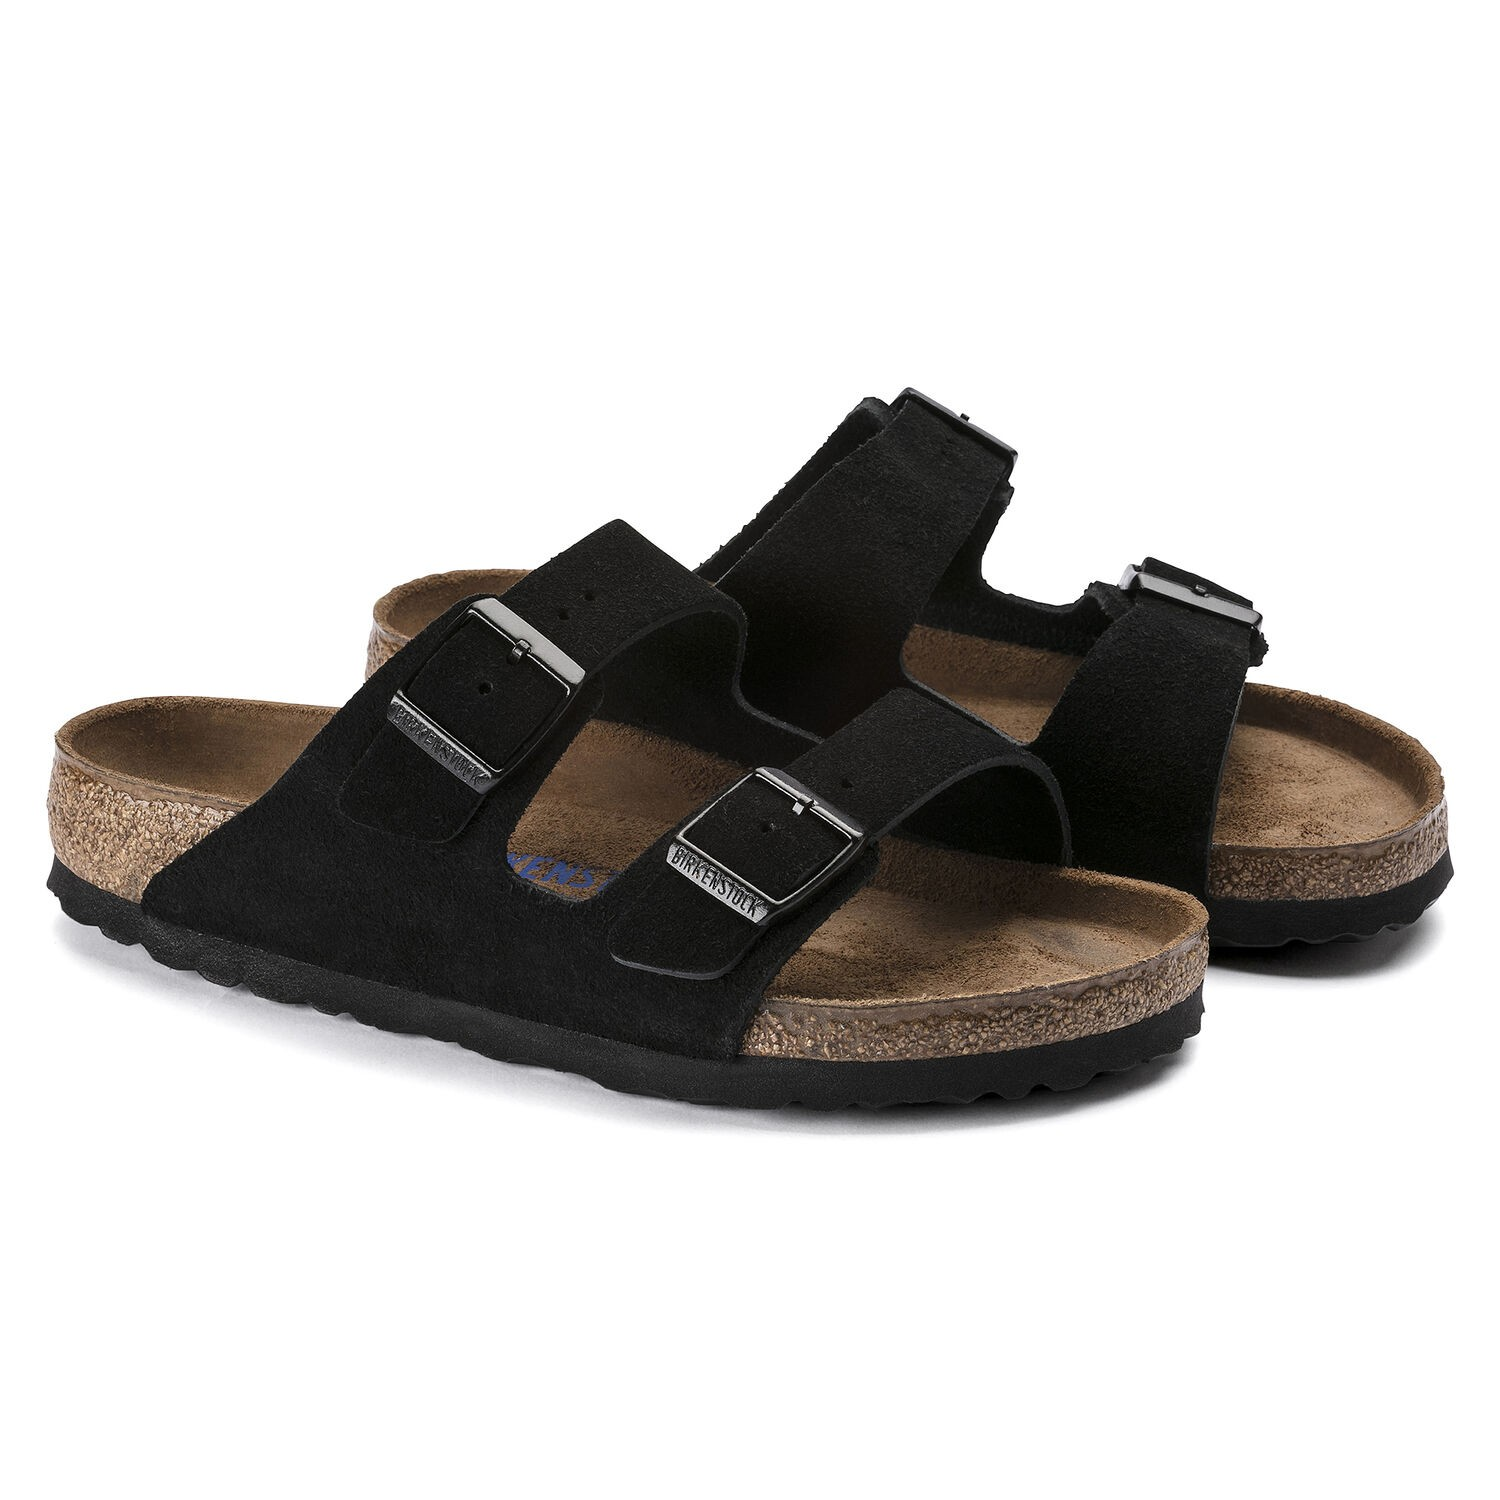 Birkenstock Arizona SFB Suede Black Regular